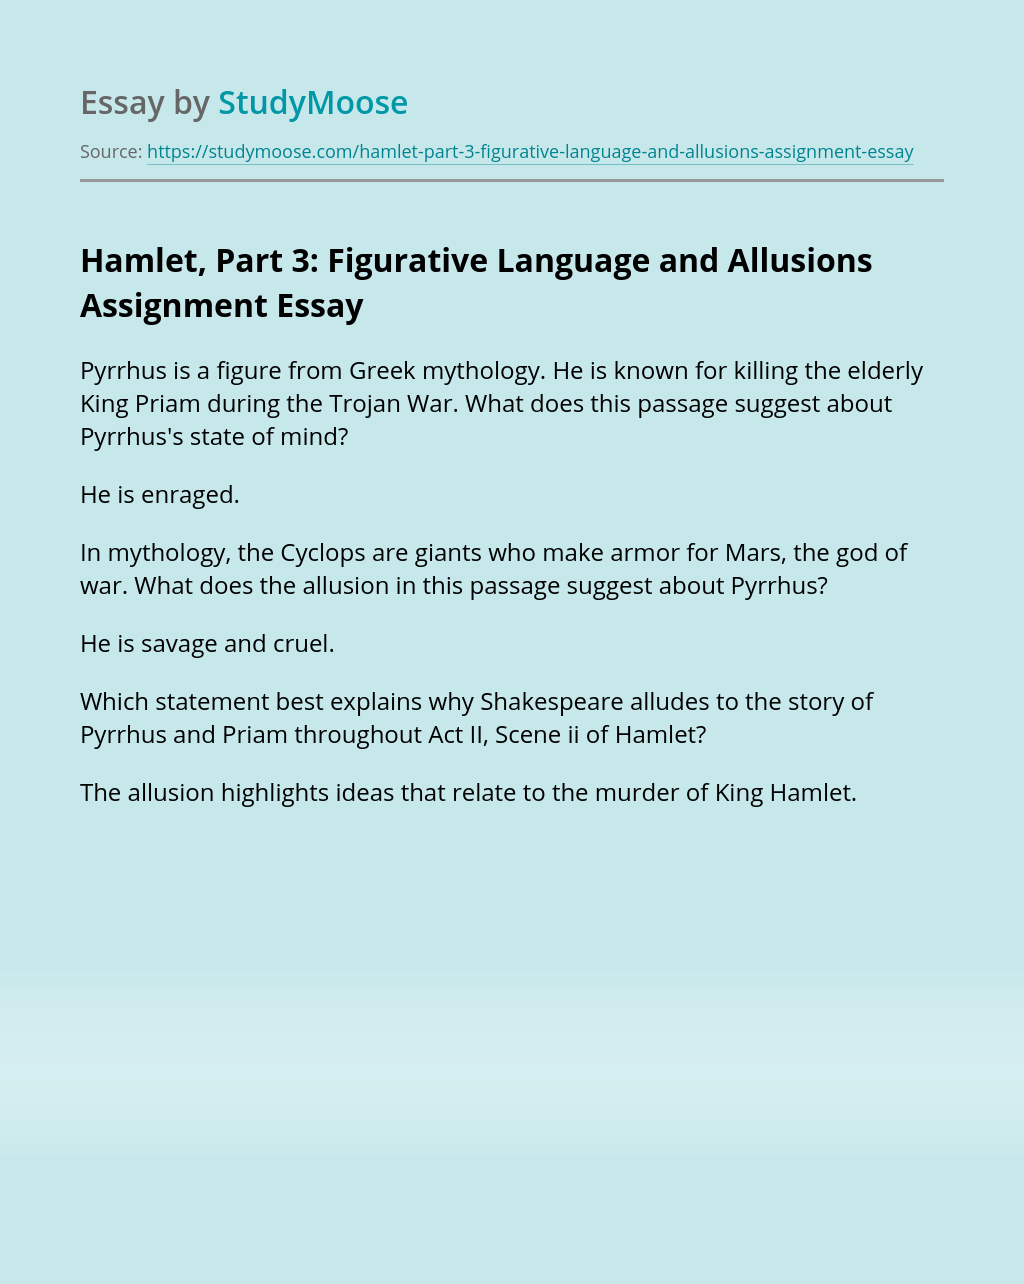 Hamlet, Part 3: Figurative Language and Allusions Assignment